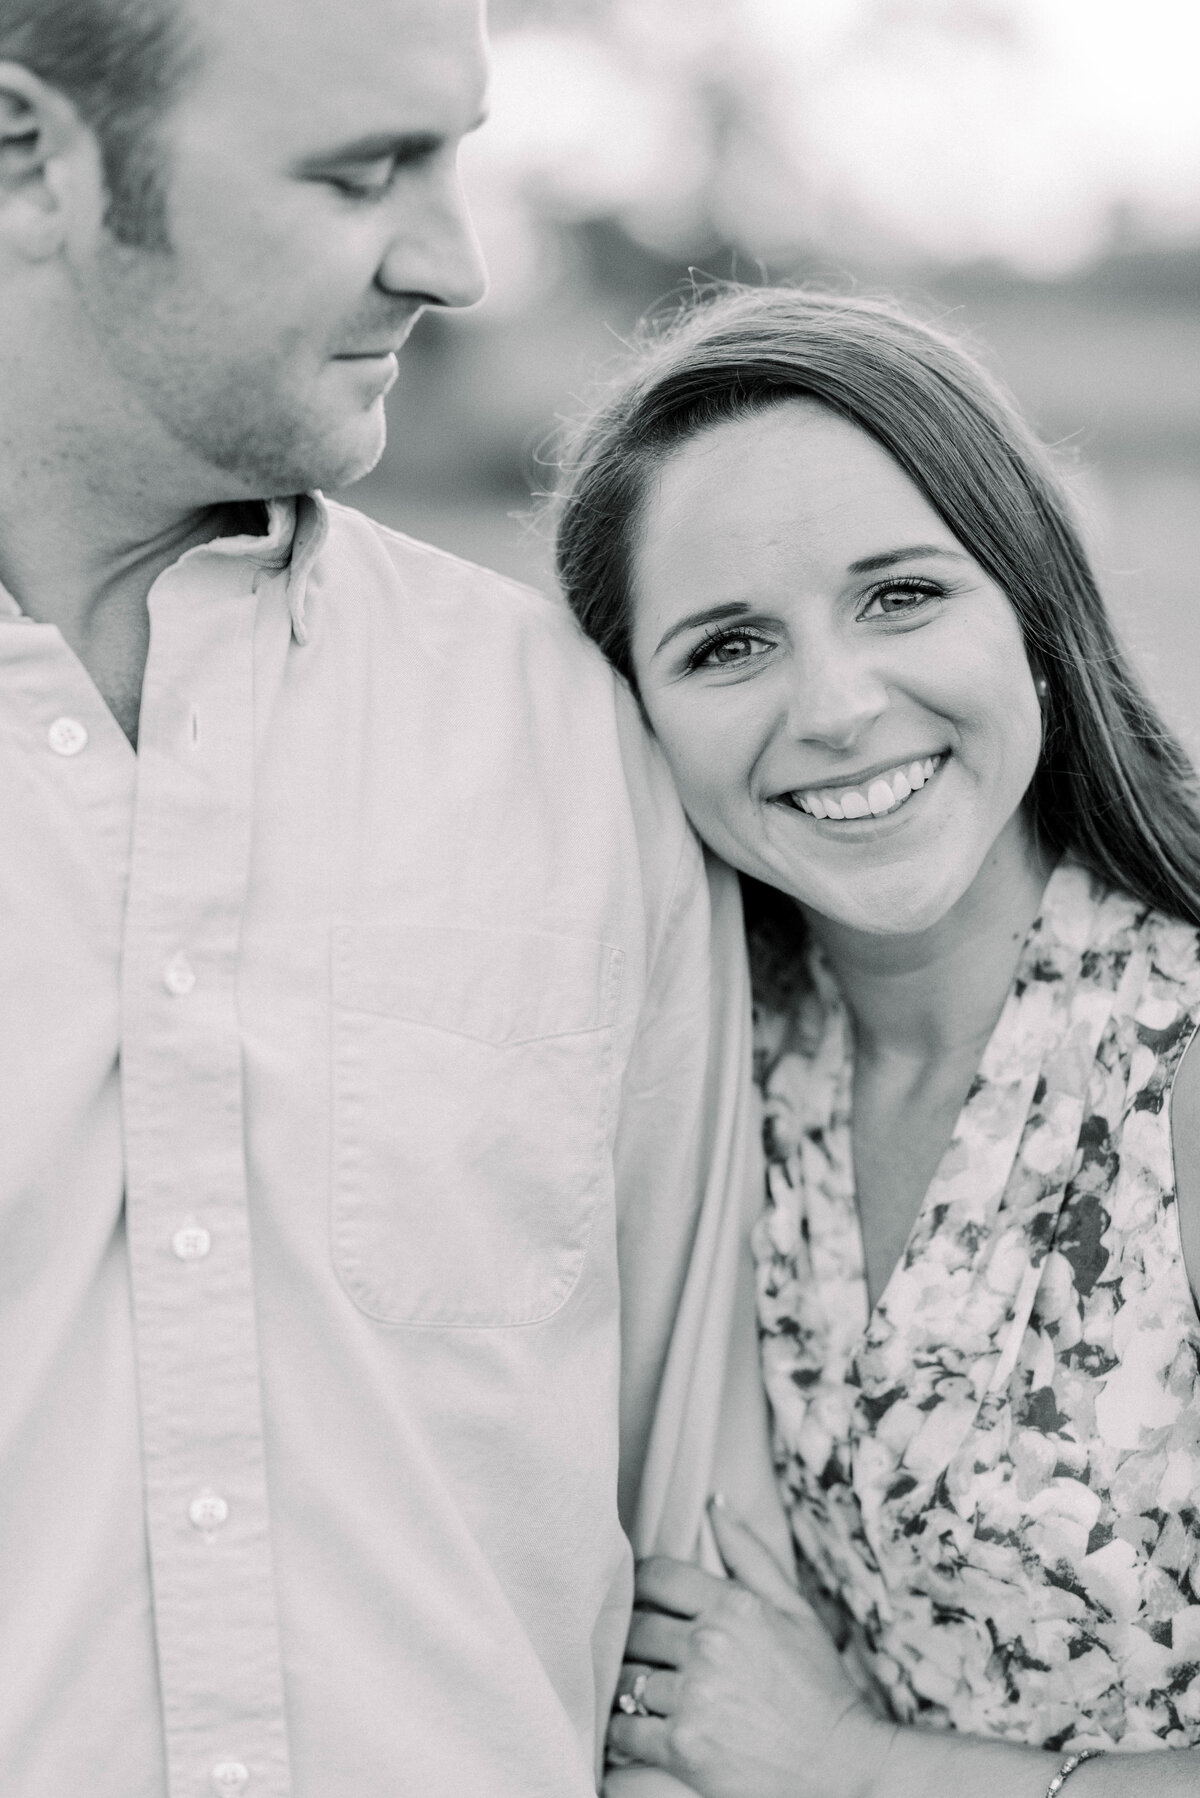 Ansley and Ben-23